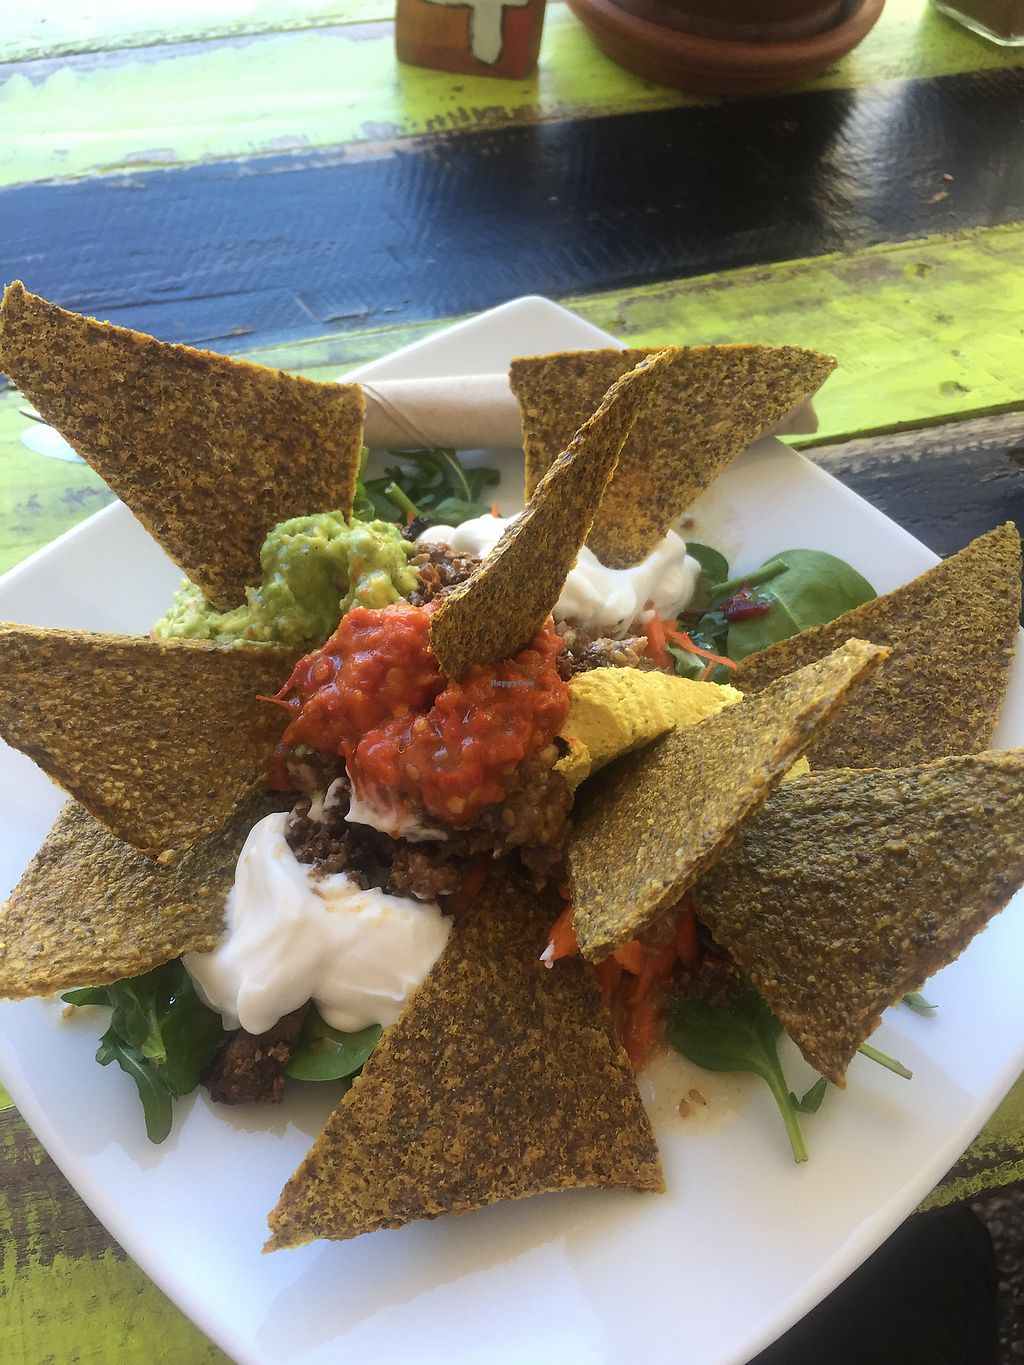 """Photo of New Earth Cafe  by <a href=""""/members/profile/soy_soft"""">soy_soft</a> <br/>Raw Nachos <br/> July 22, 2017  - <a href='/contact/abuse/image/45808/283117'>Report</a>"""